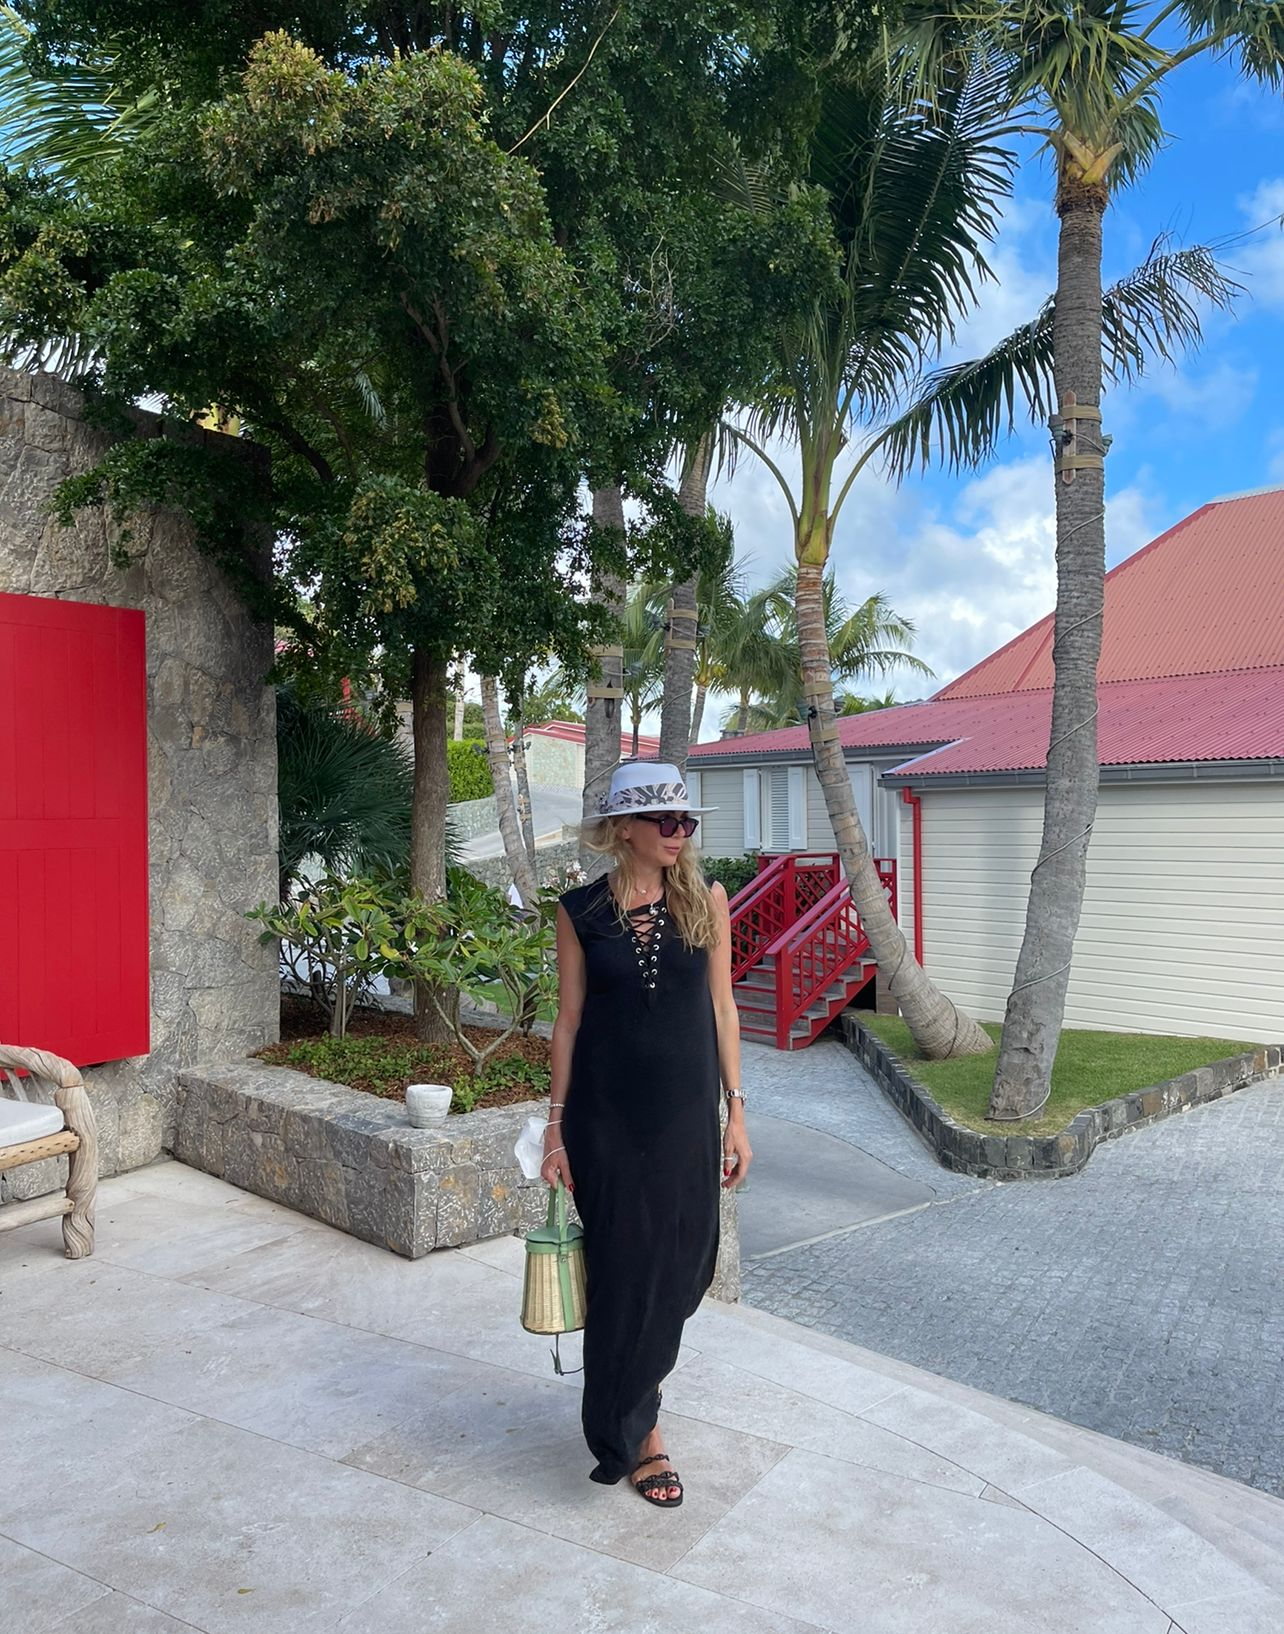 Discovering the beauty of St. Barths